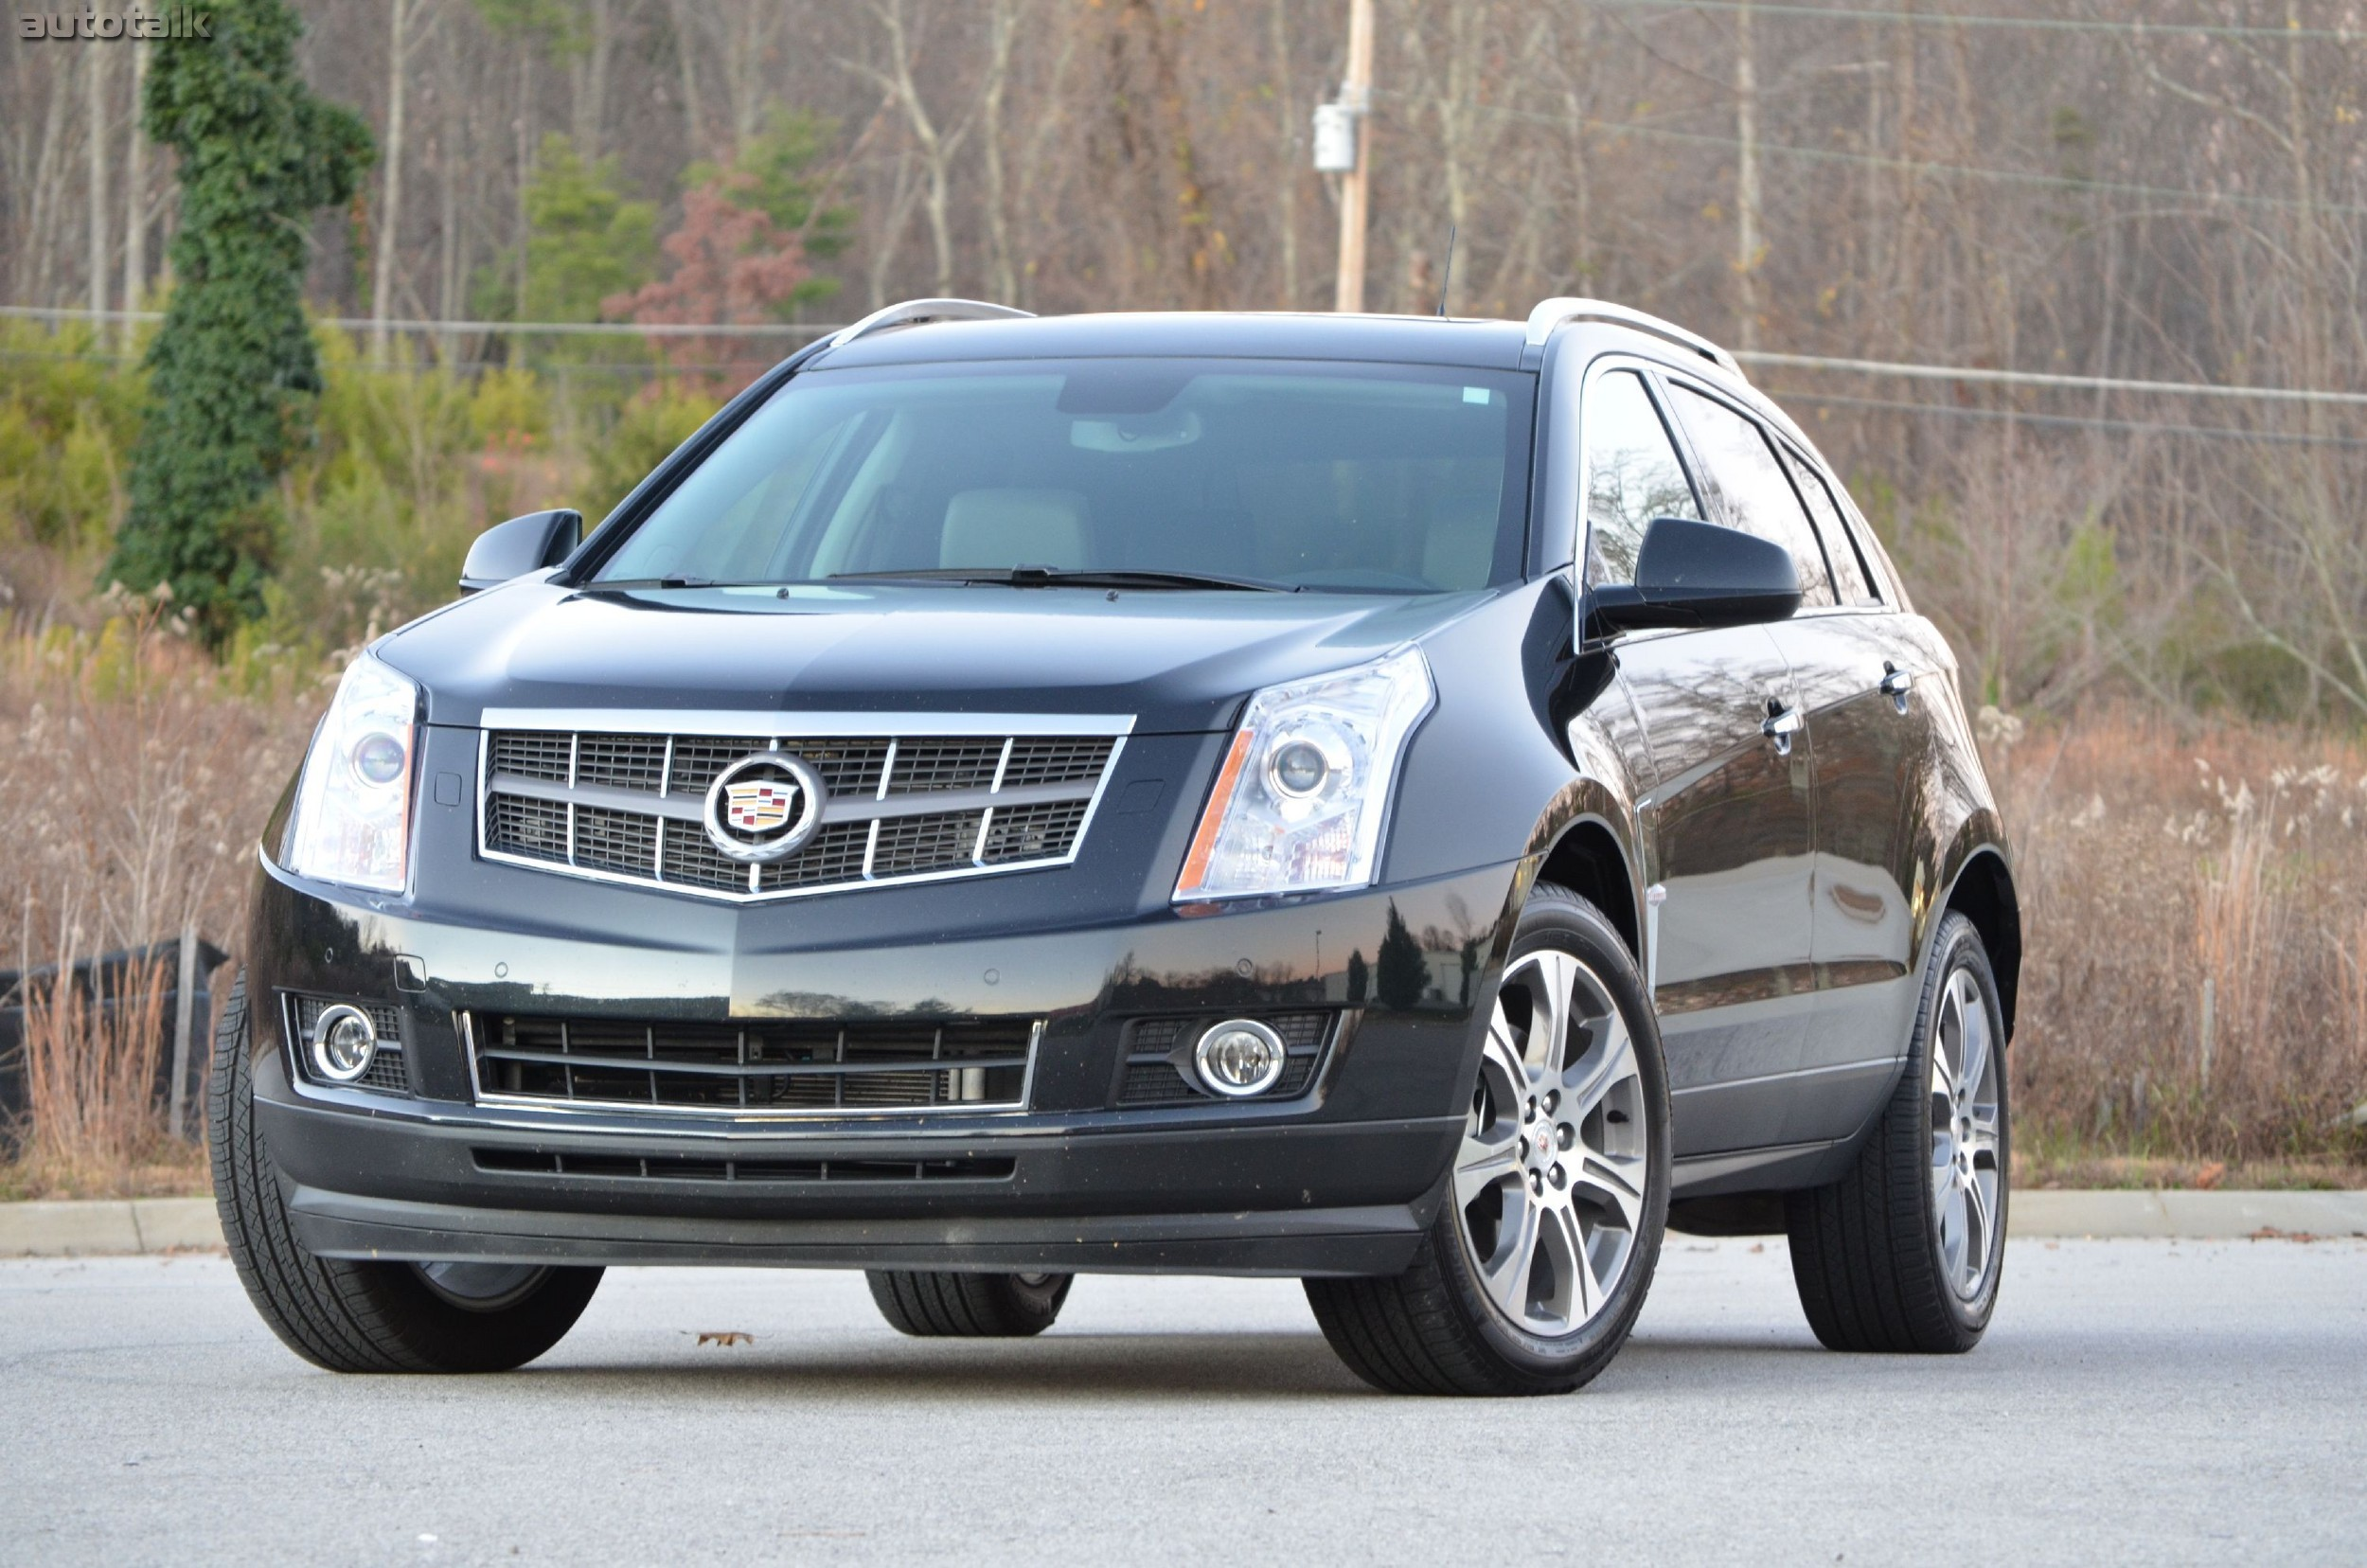 cadillac media galleries content en united detail states pages srx vehicles us pressroom photos